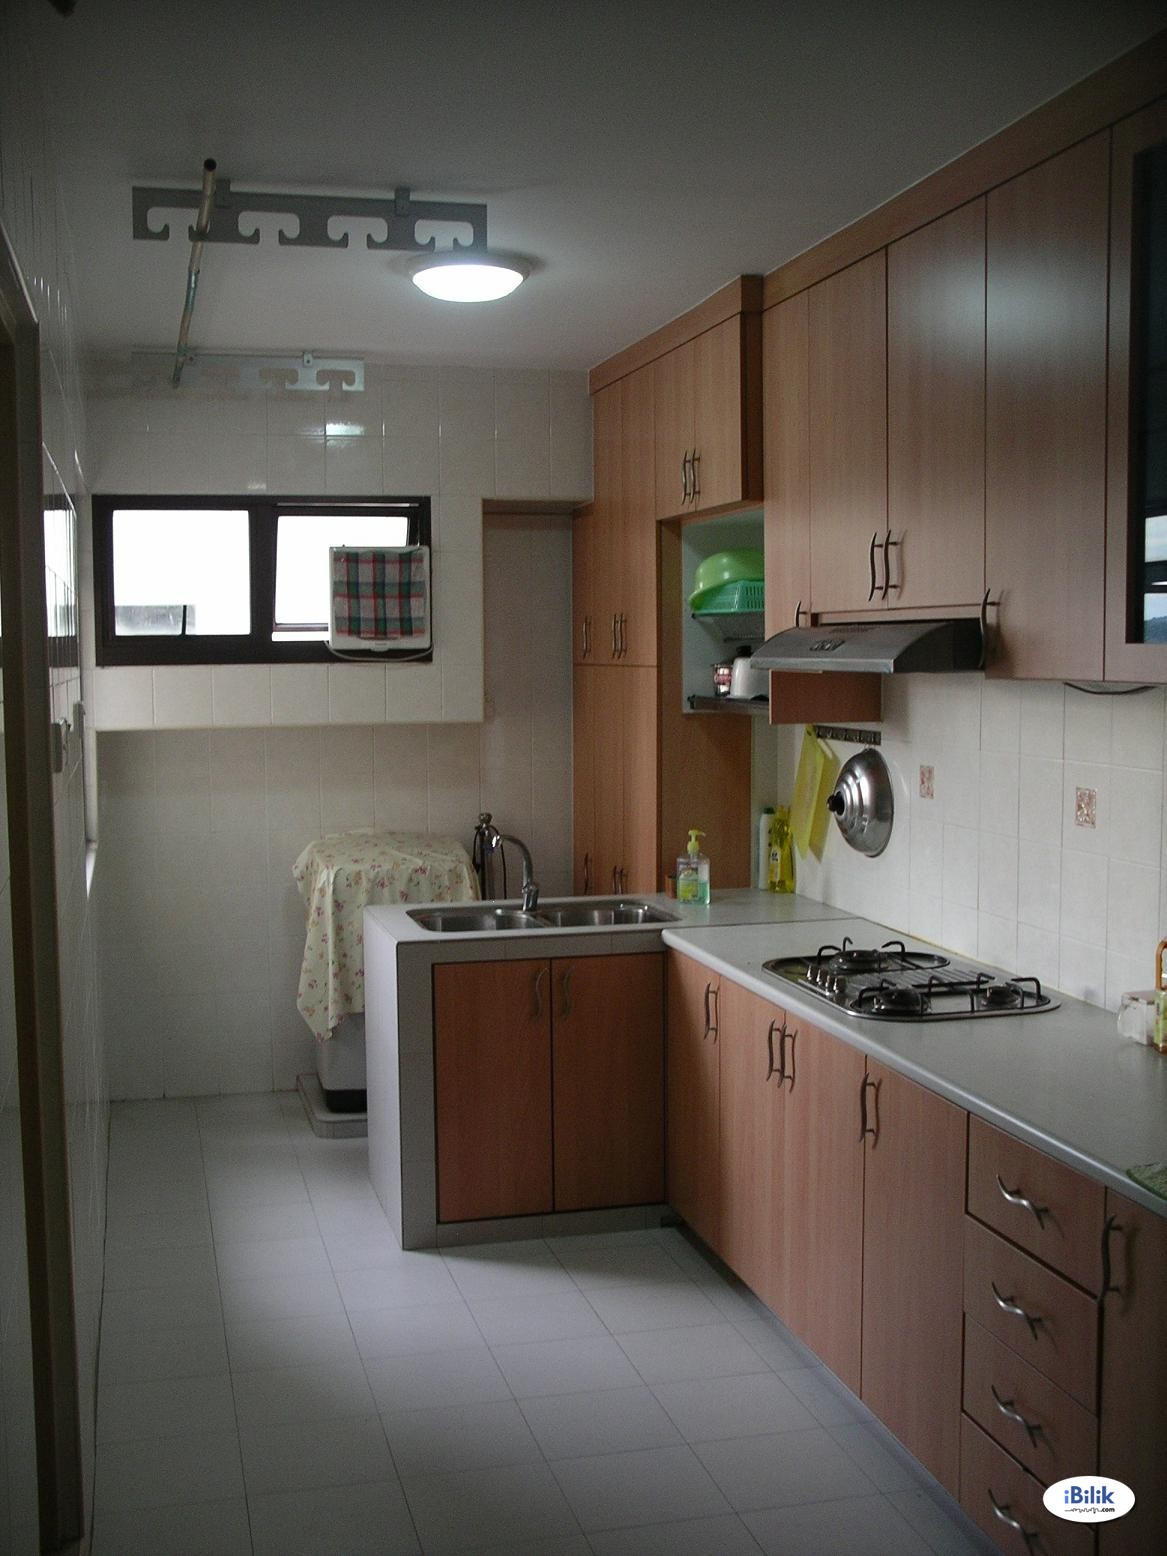 Middle Room at Jurong West, Jurong